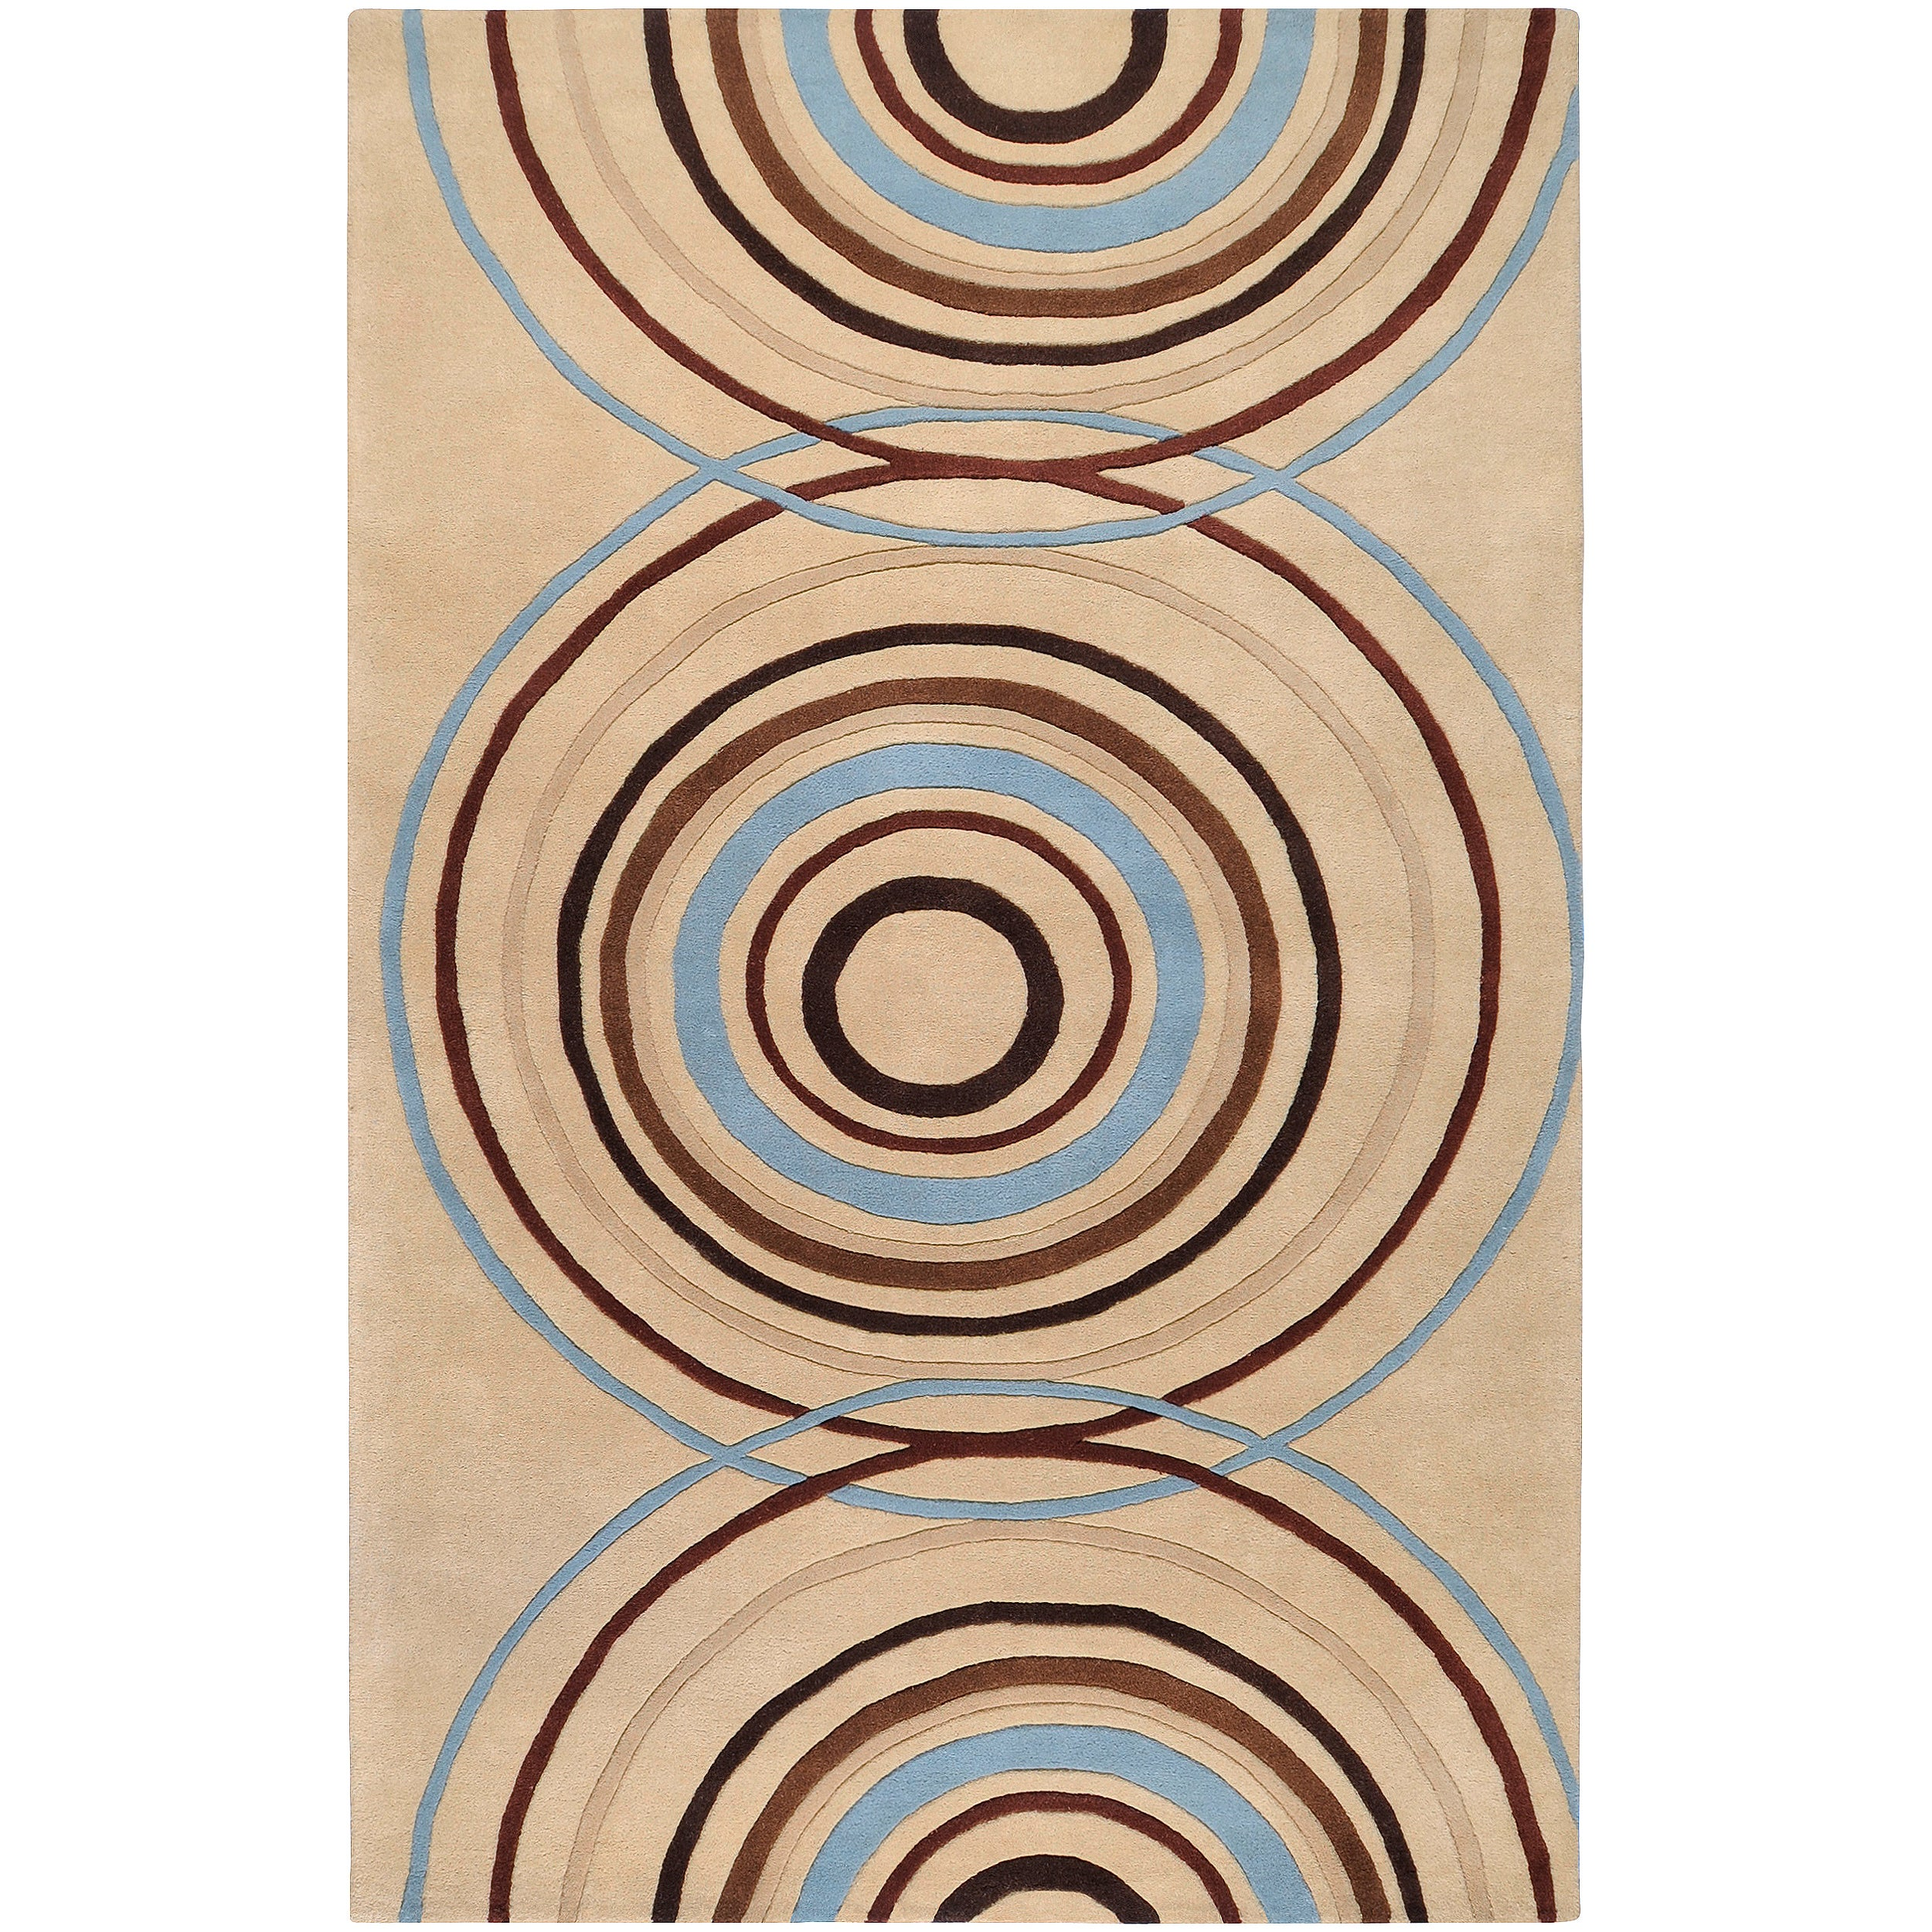 Hand-tufted Beige Contemporary Circles Easley Wool Geometric Rug (4' x 6')